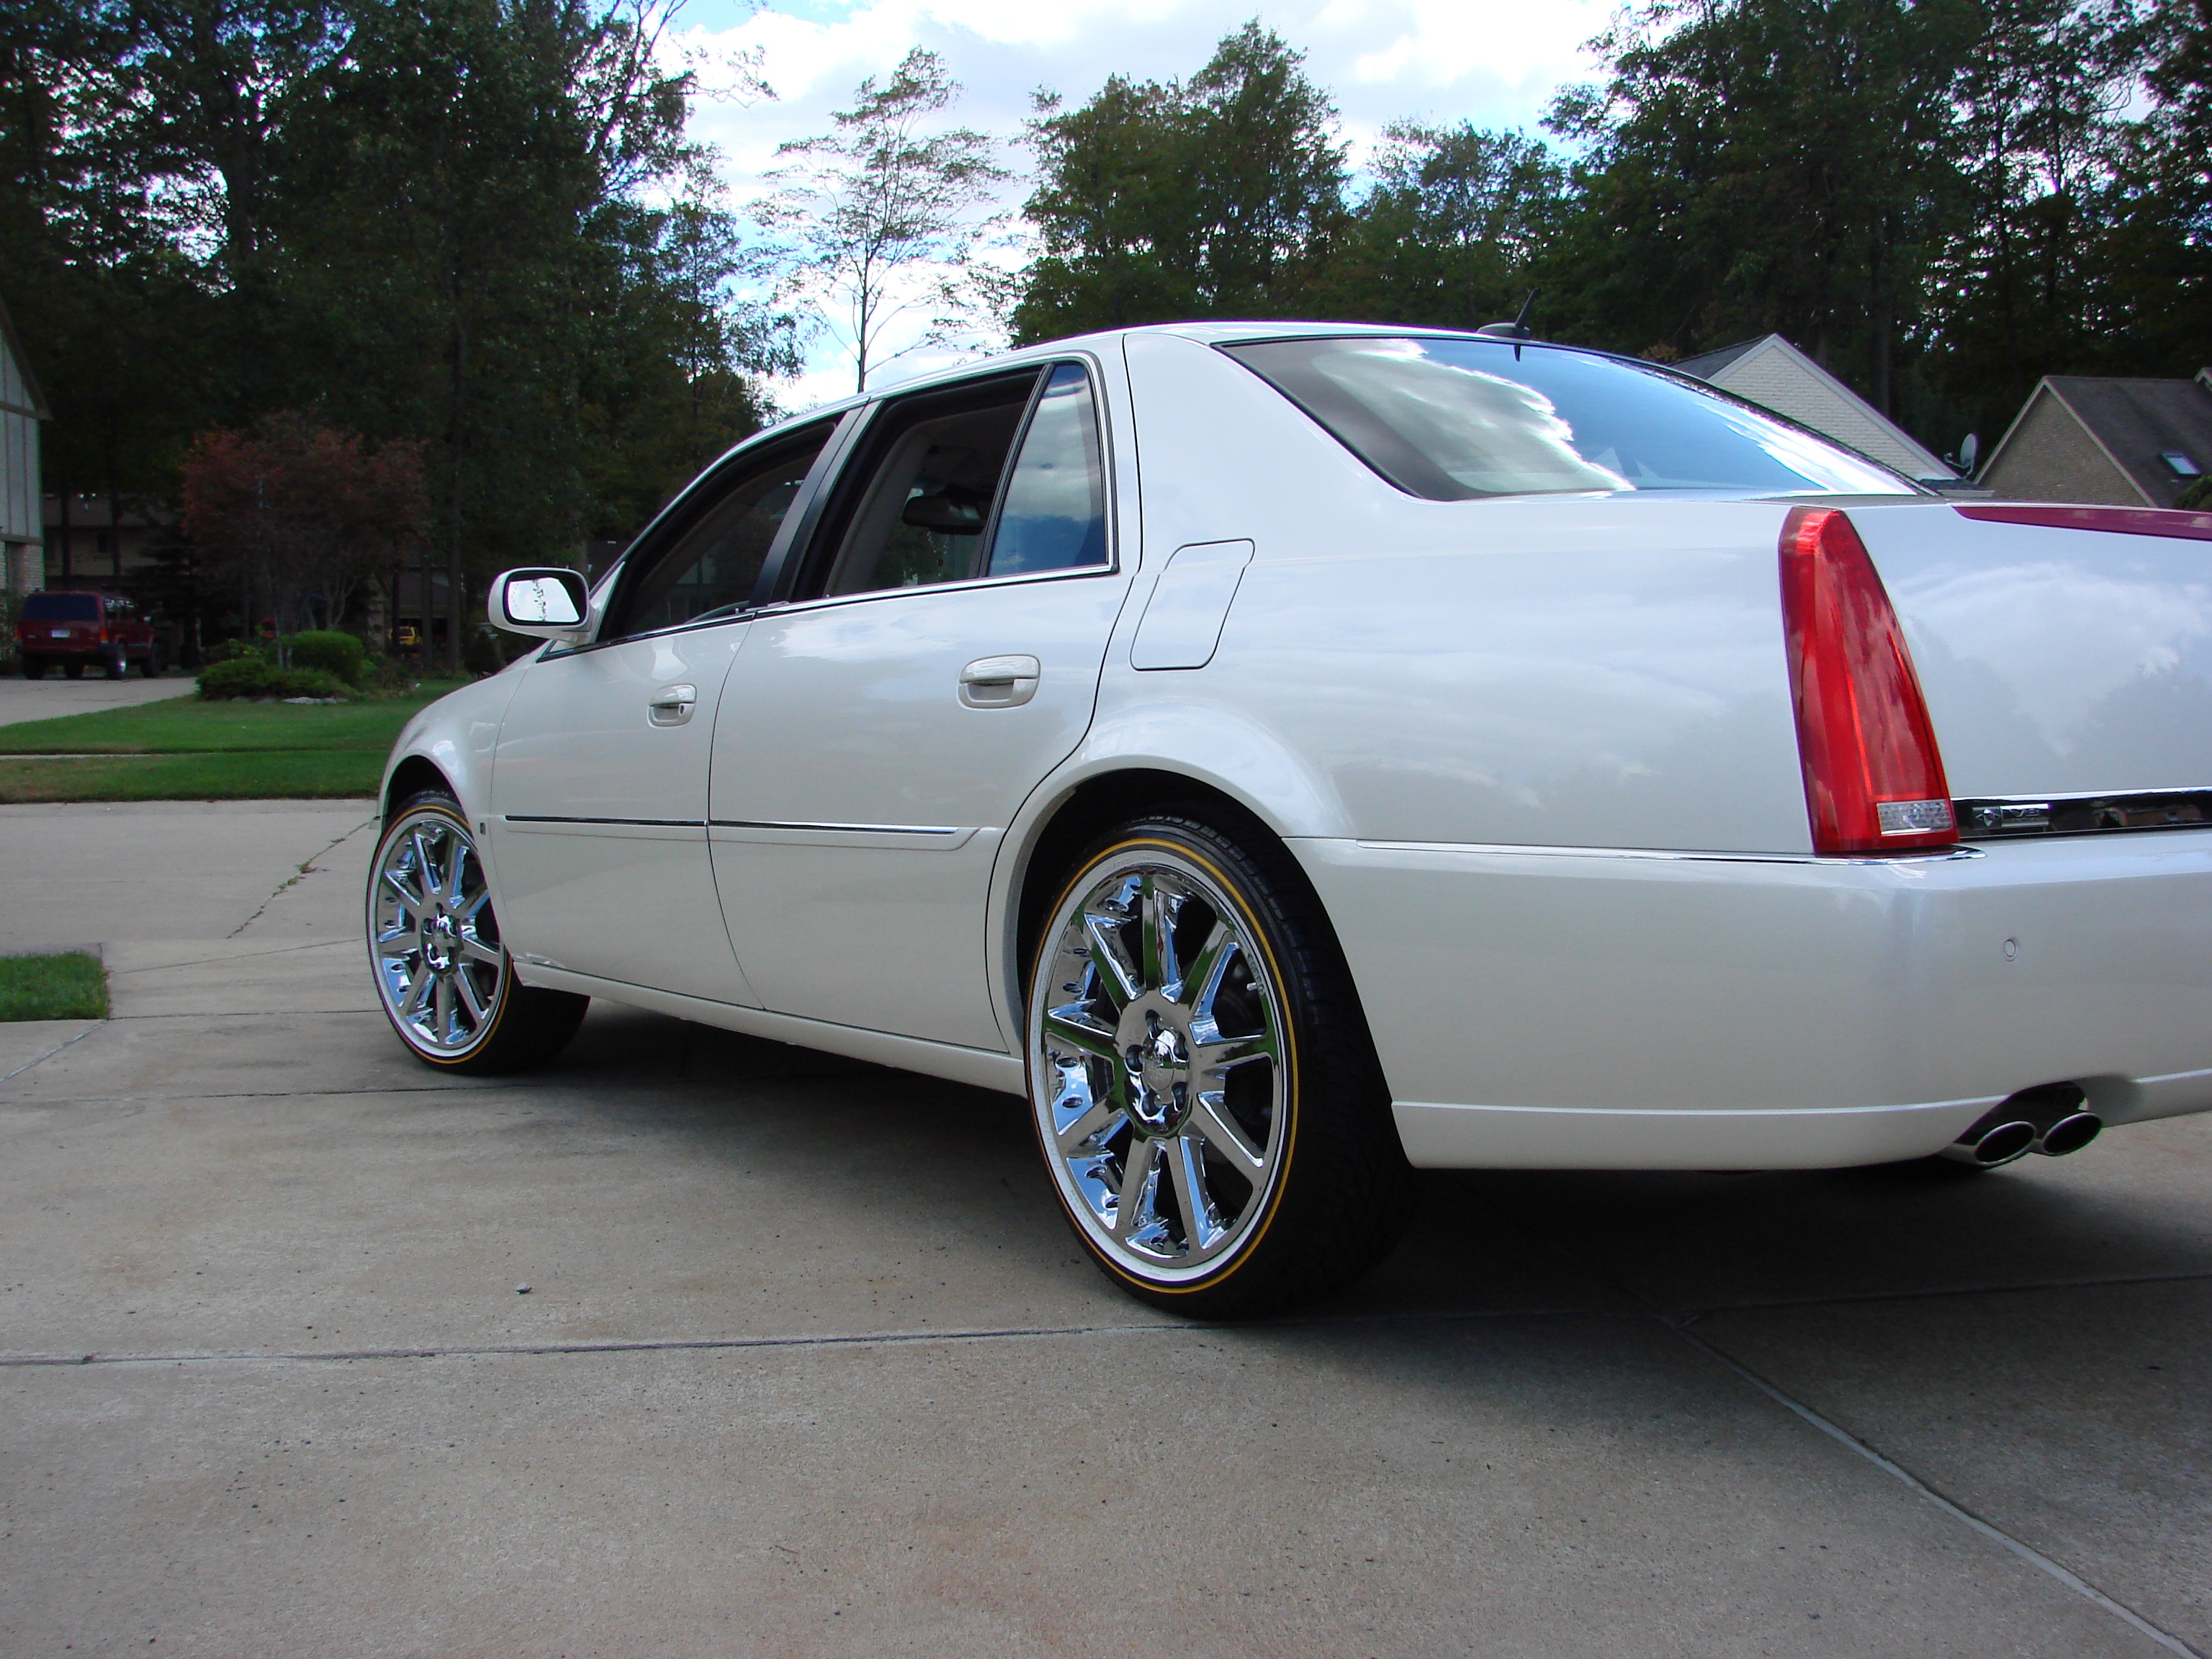 115495 Check Out My New Rims 22s also 361904463908 further Large 2014 03 21 12 01 27 besides 2015 Shelby Gt500 Photos together with Exterior 79148247. on 2011 cadillac dts with rims